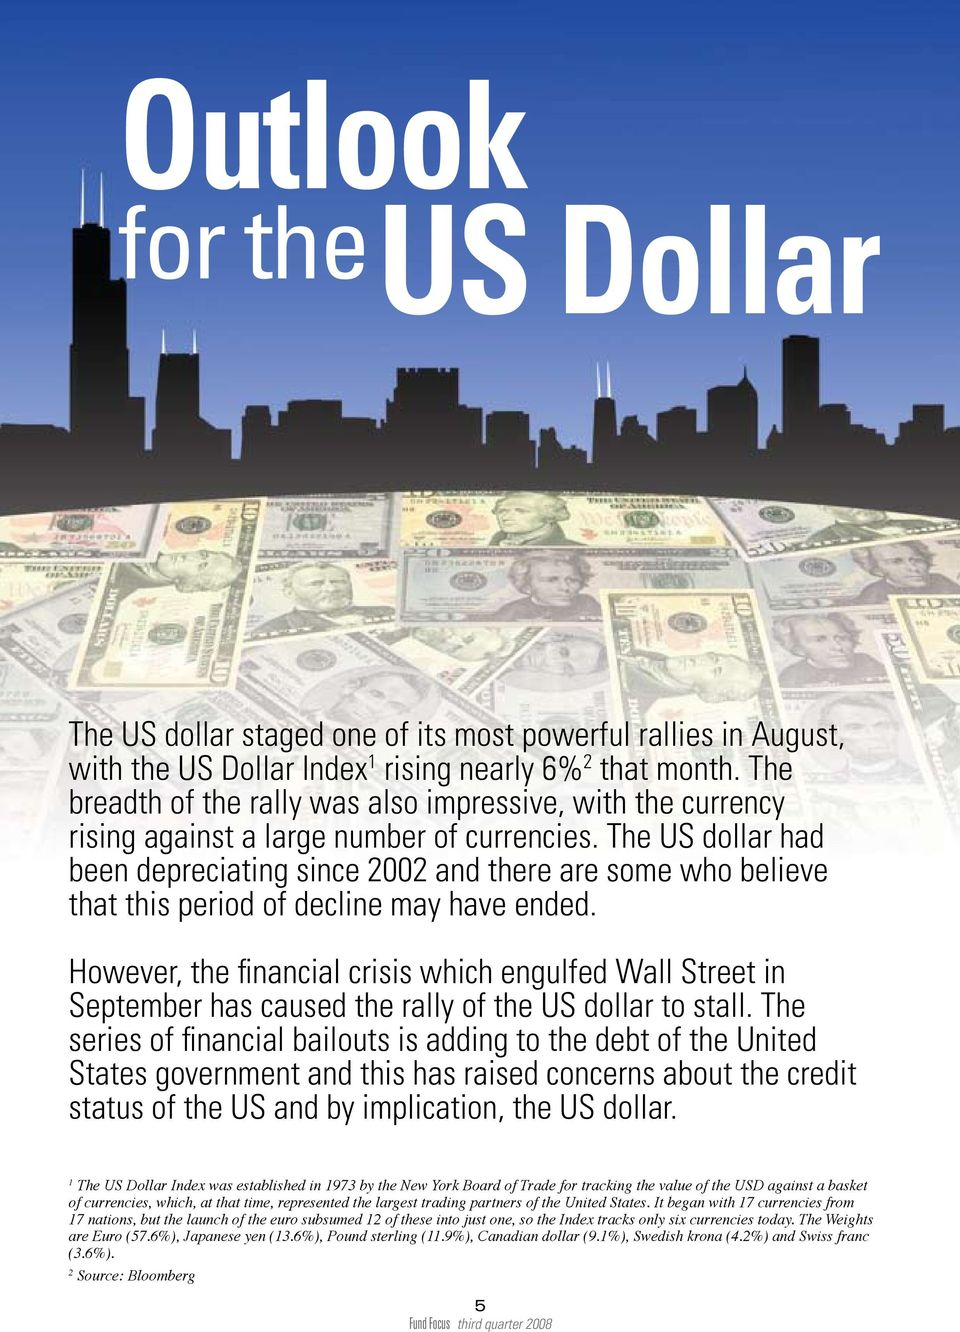 The US dollar had been depreciating since 2002 and there are some who believe that this period of decline may have ended.